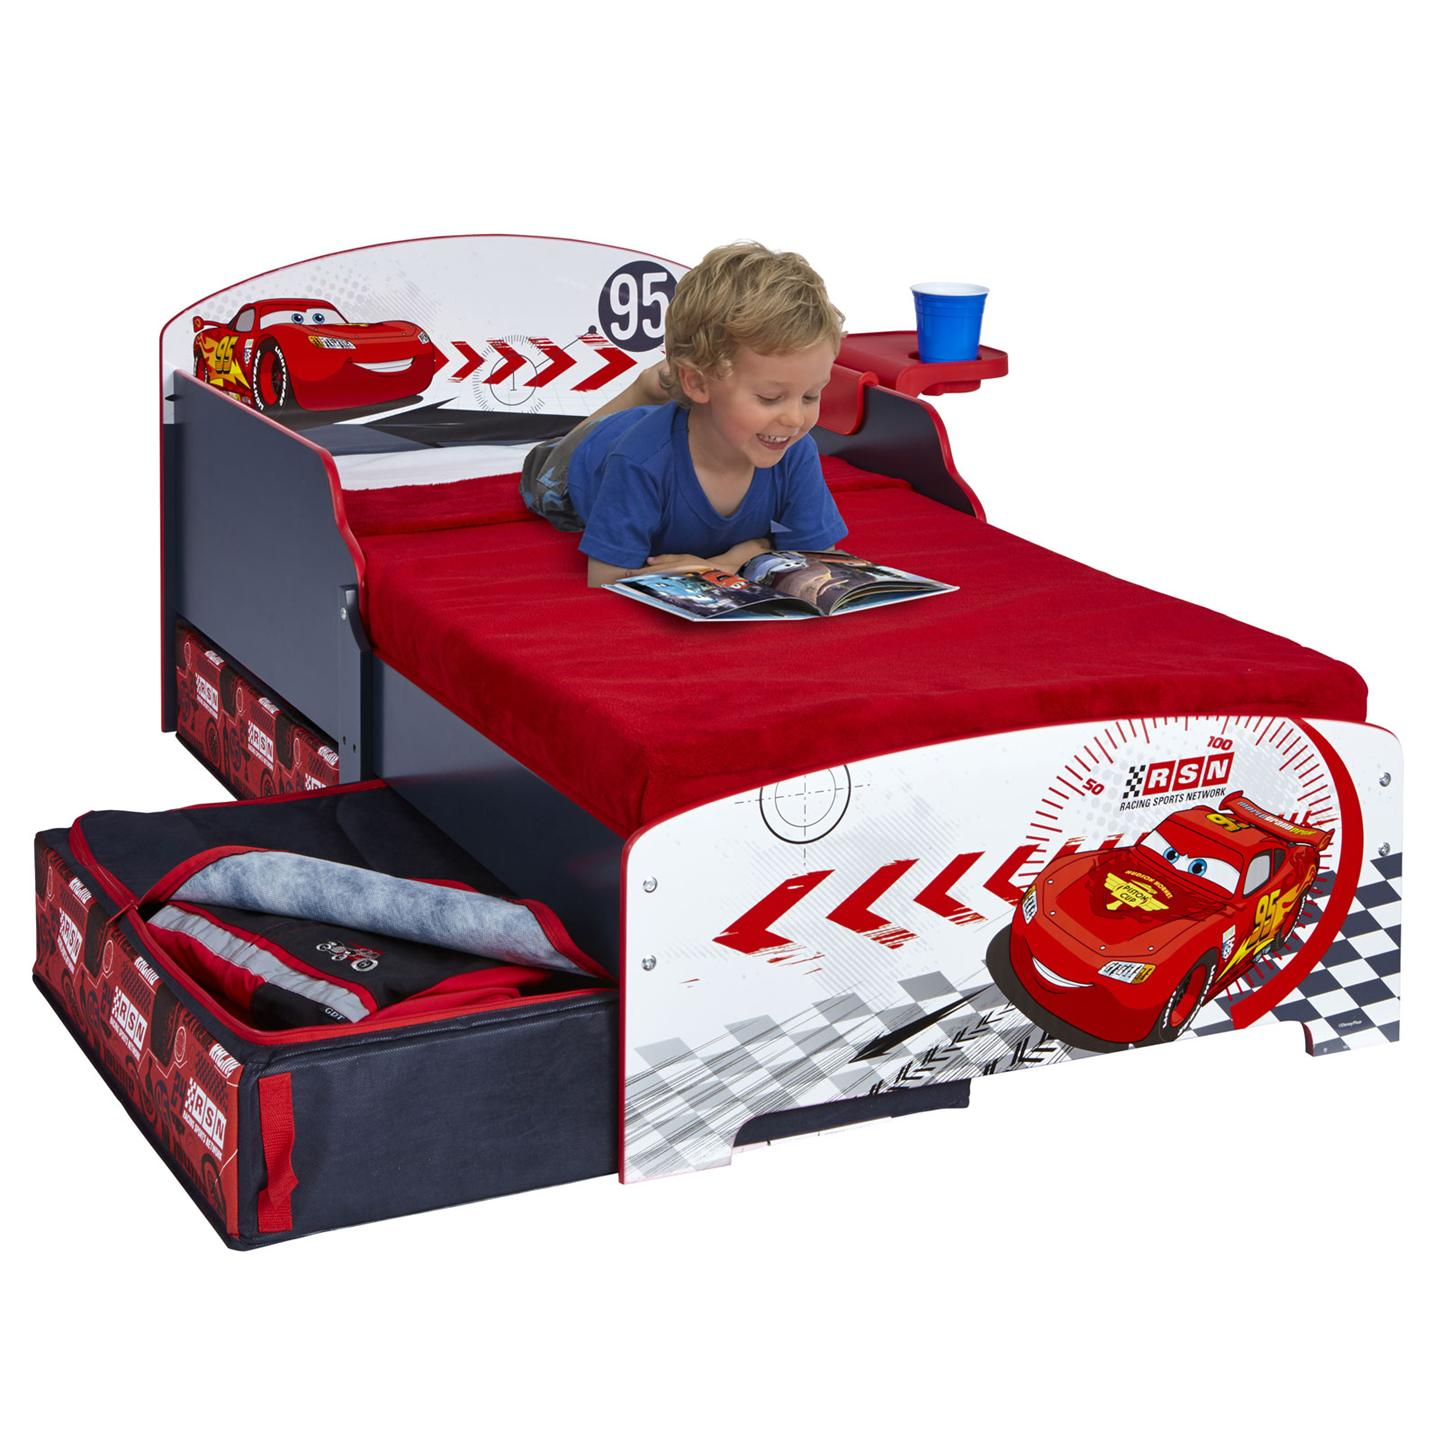 disney cars junior toddler bed storage shelf new boxed. Black Bedroom Furniture Sets. Home Design Ideas